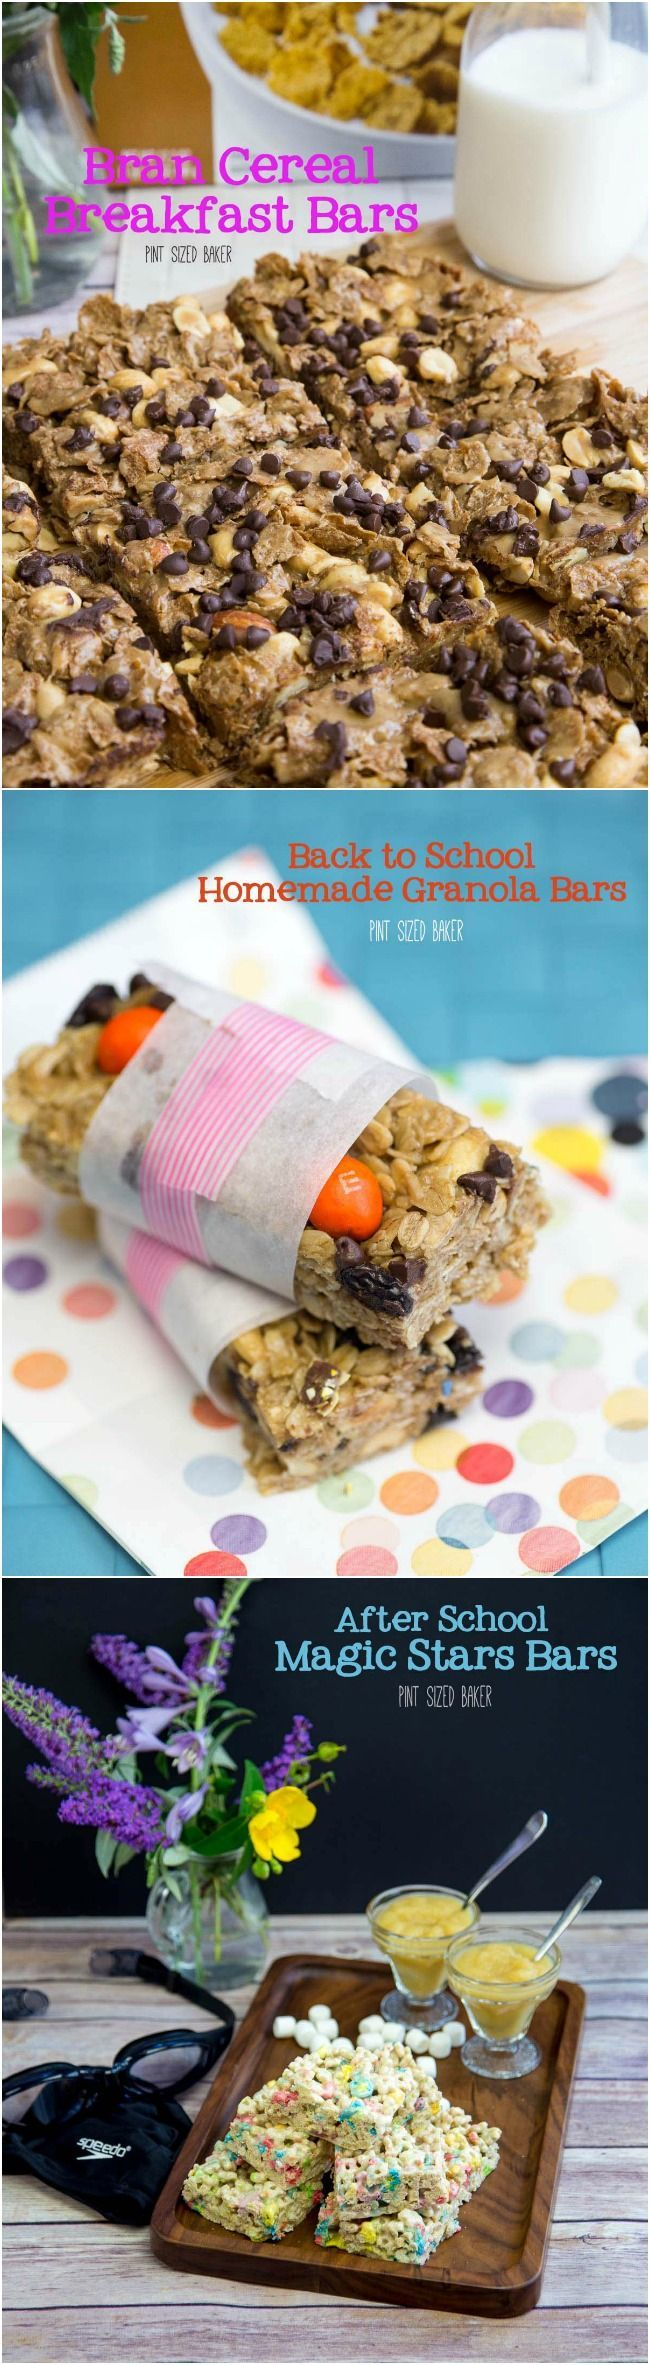 Make the kids some homemade cereal bars for breakfast, lunch, and after school! So fun and easy - he kids can help out!